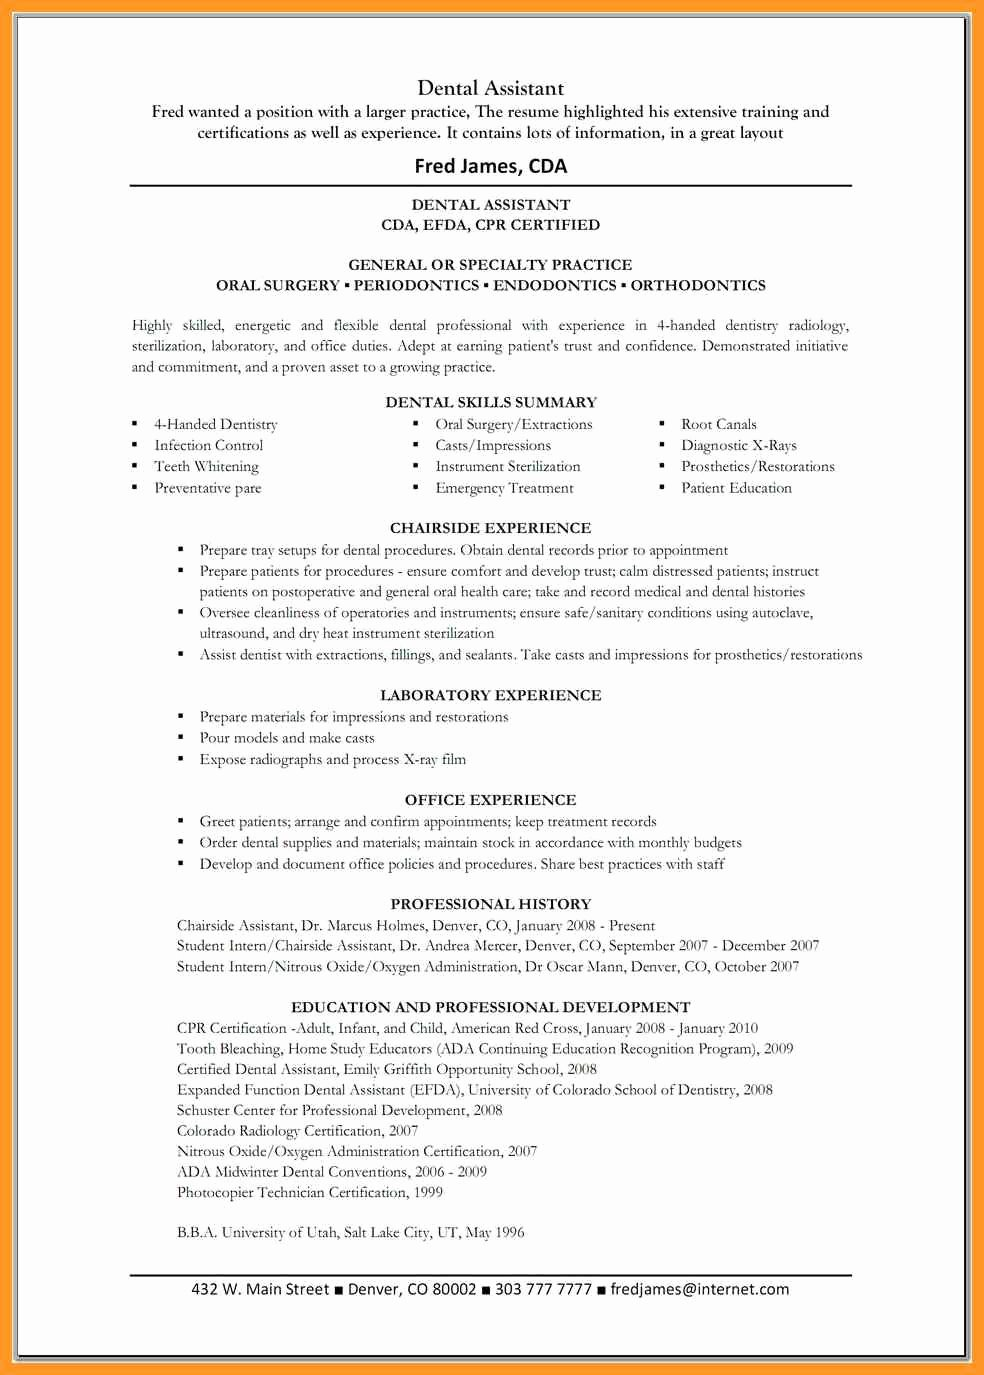 Dental assistant Resume Skills List